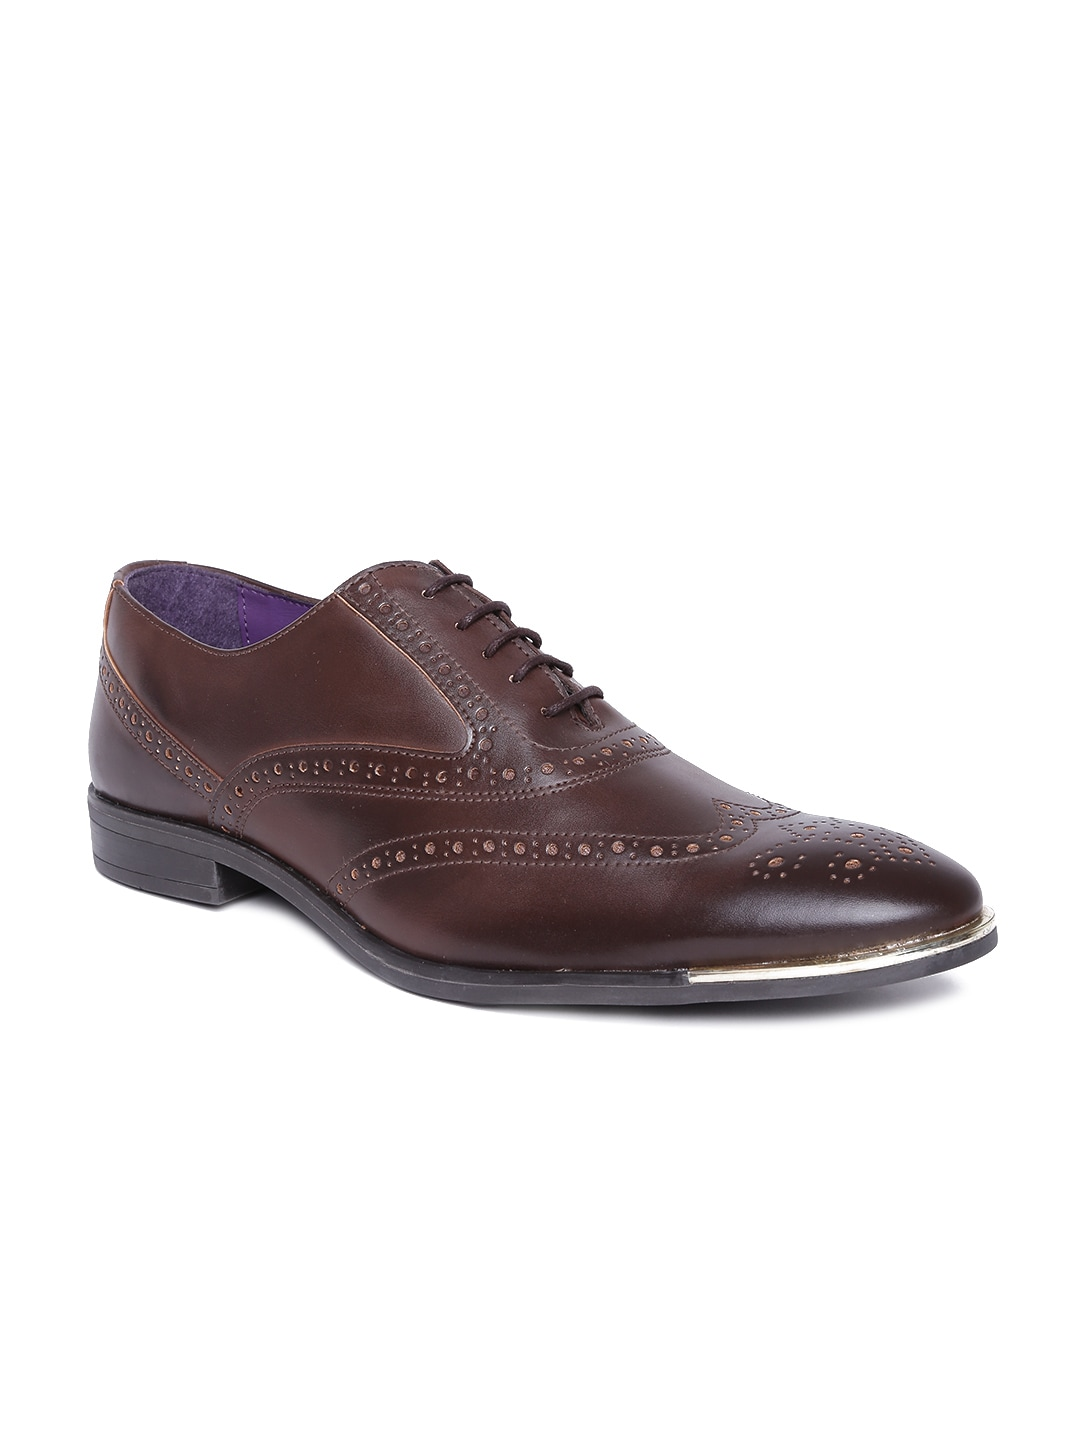 Knotty Derby by Arden Men Brown Brogues image